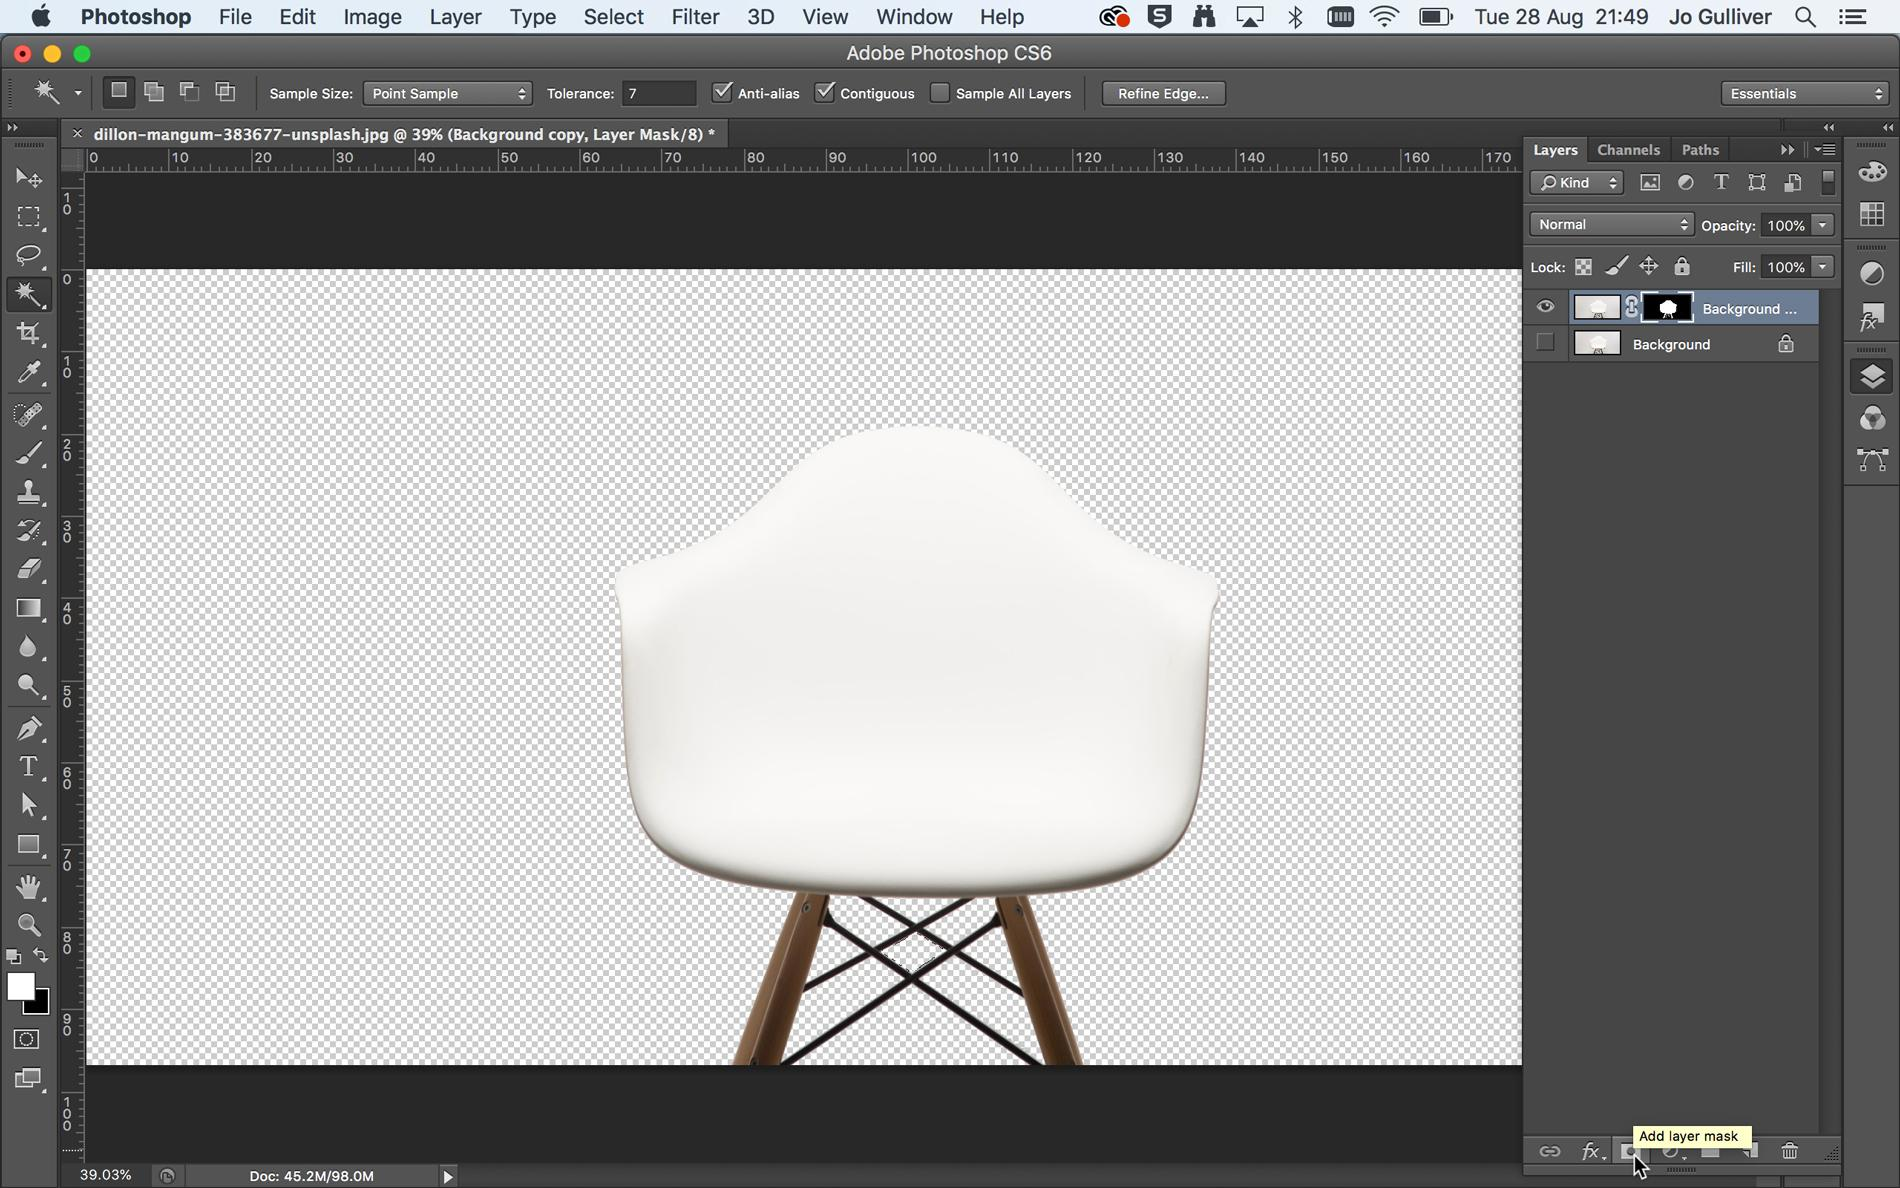 Screenshot of white chair with background removed in Photoshop